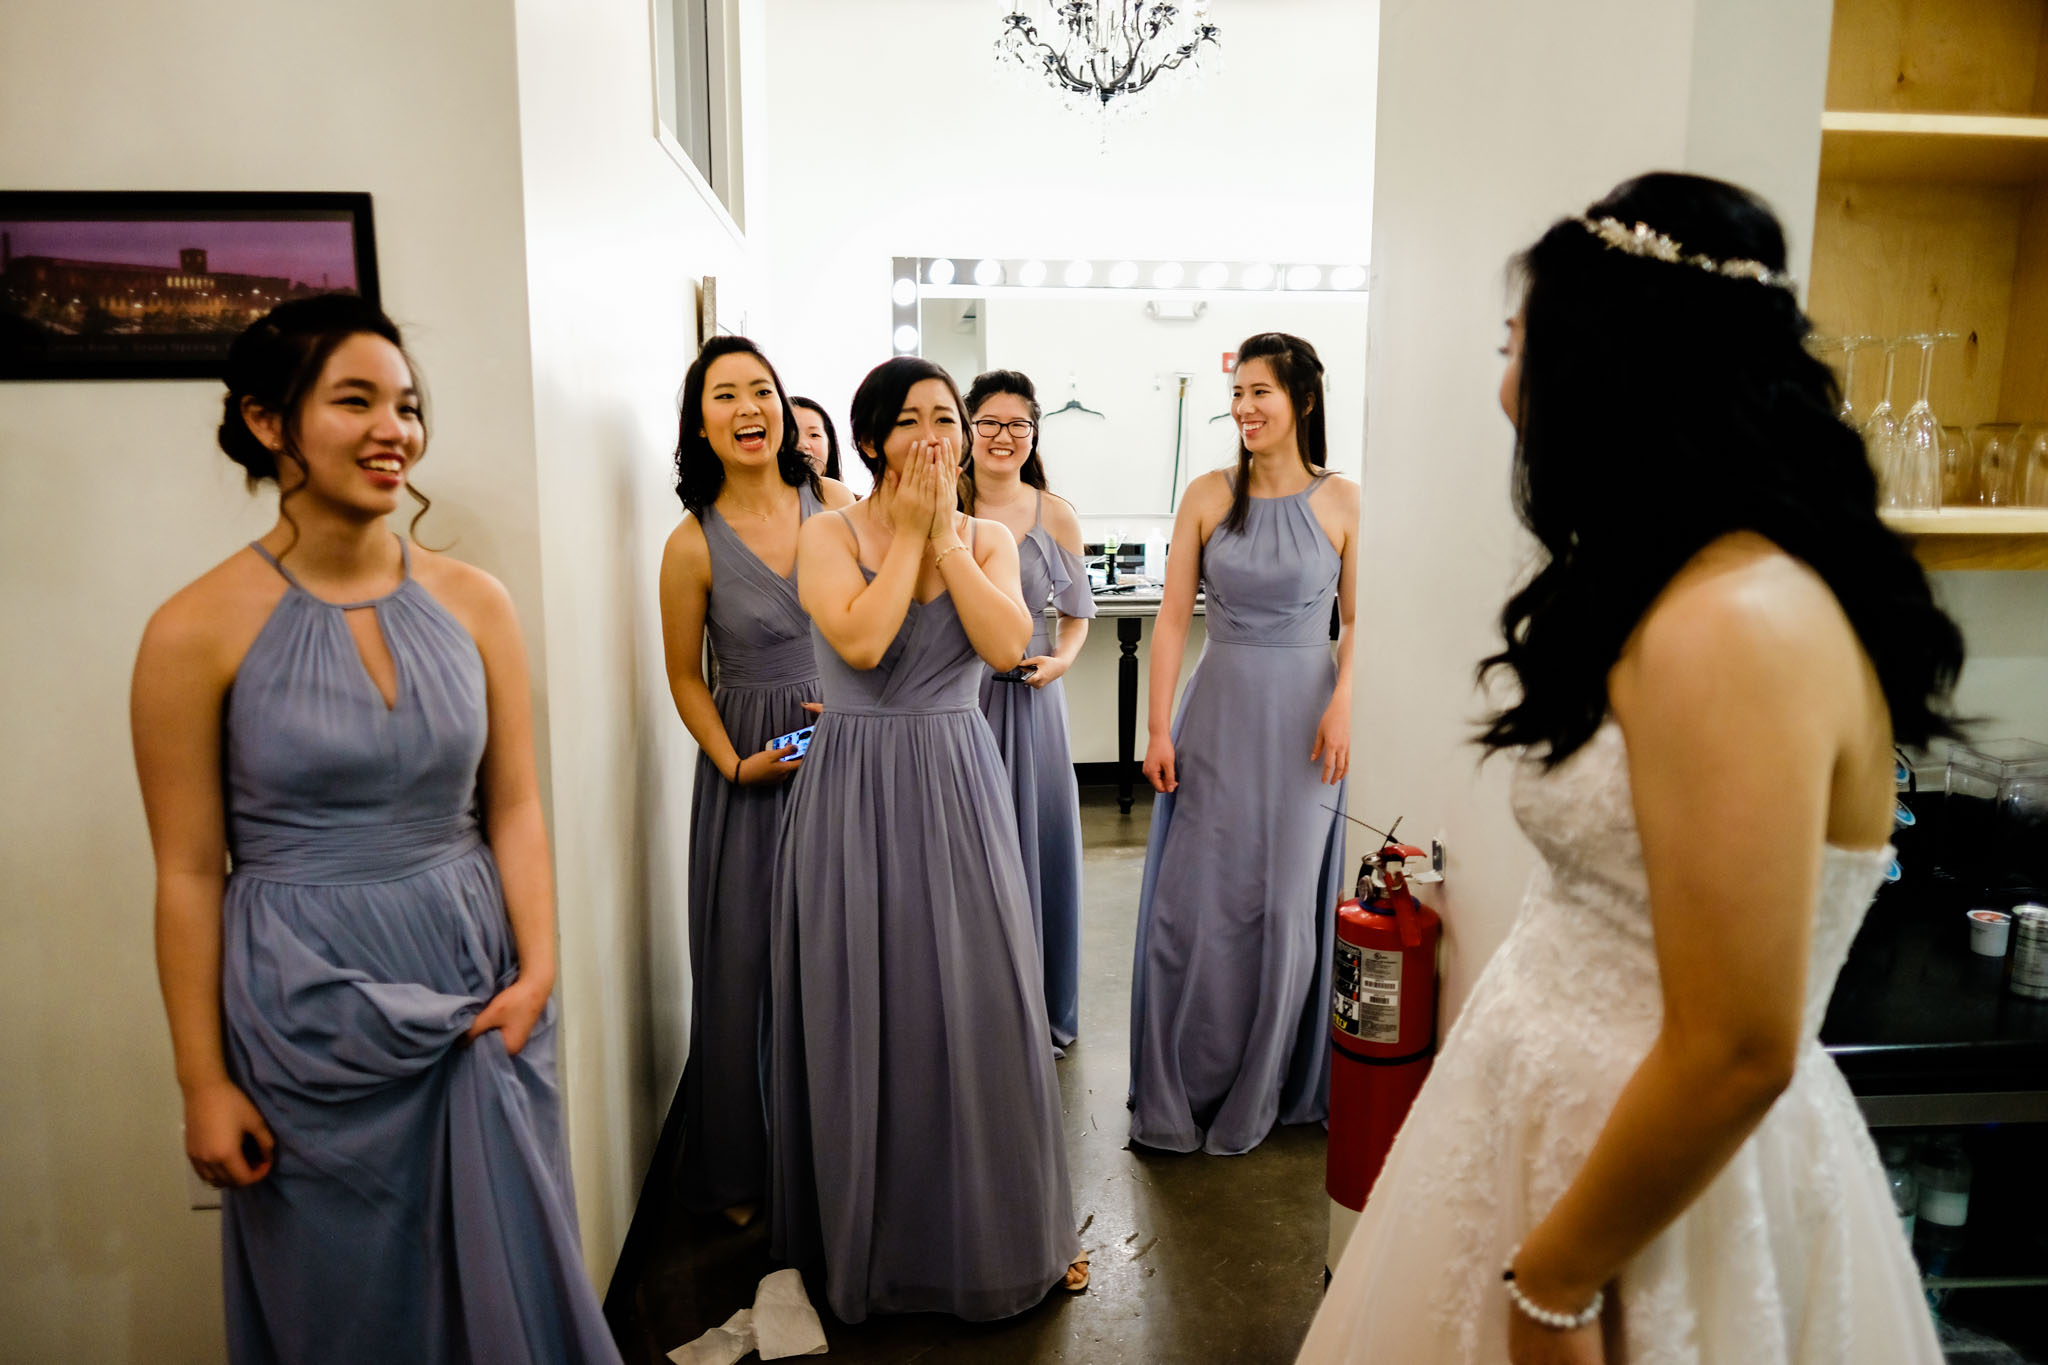 Bridesmaids seeing Bride in wedding dress | The Cotton Room Wedding Photography | Durham NC | By G. Lin Photography